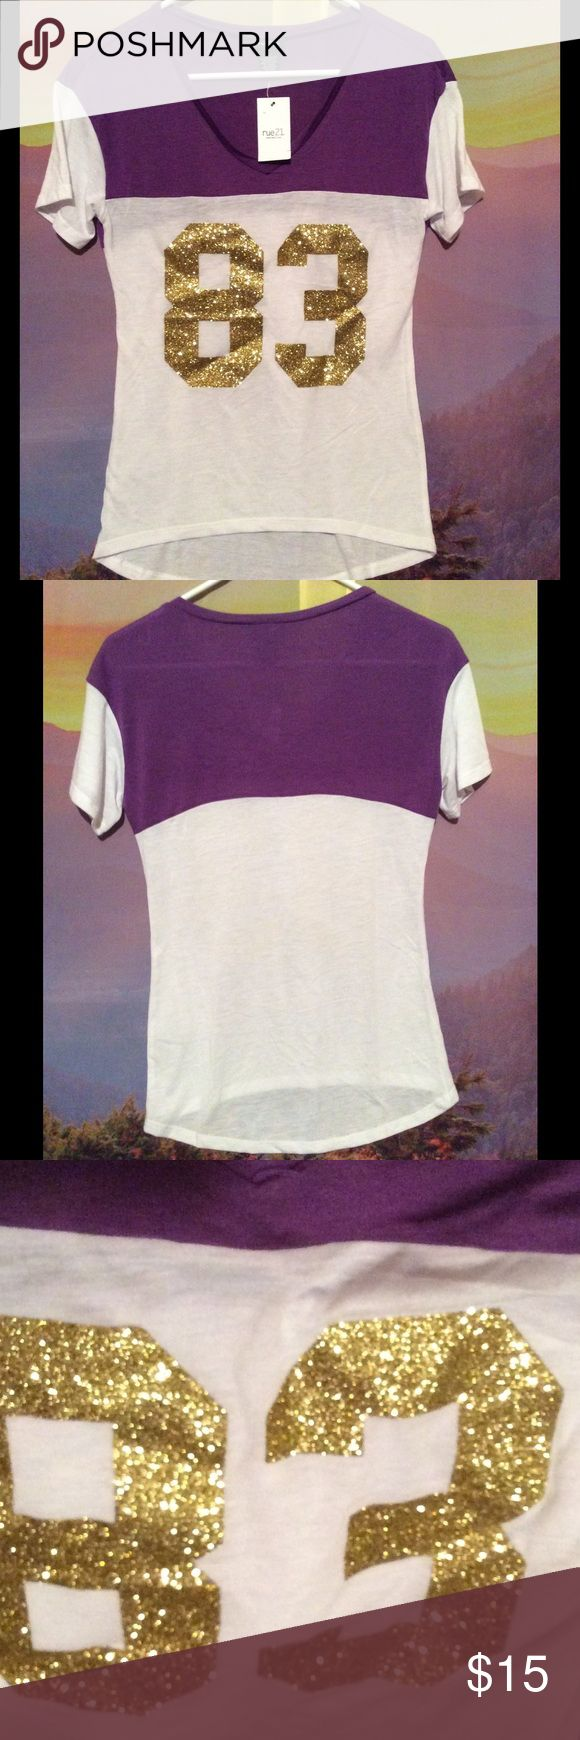 Super cute purple and gold tee #83 Stylish and golden #83 rue21 tee. Make me an offfer! Rue 21 Tops Tees - Short Sleeve